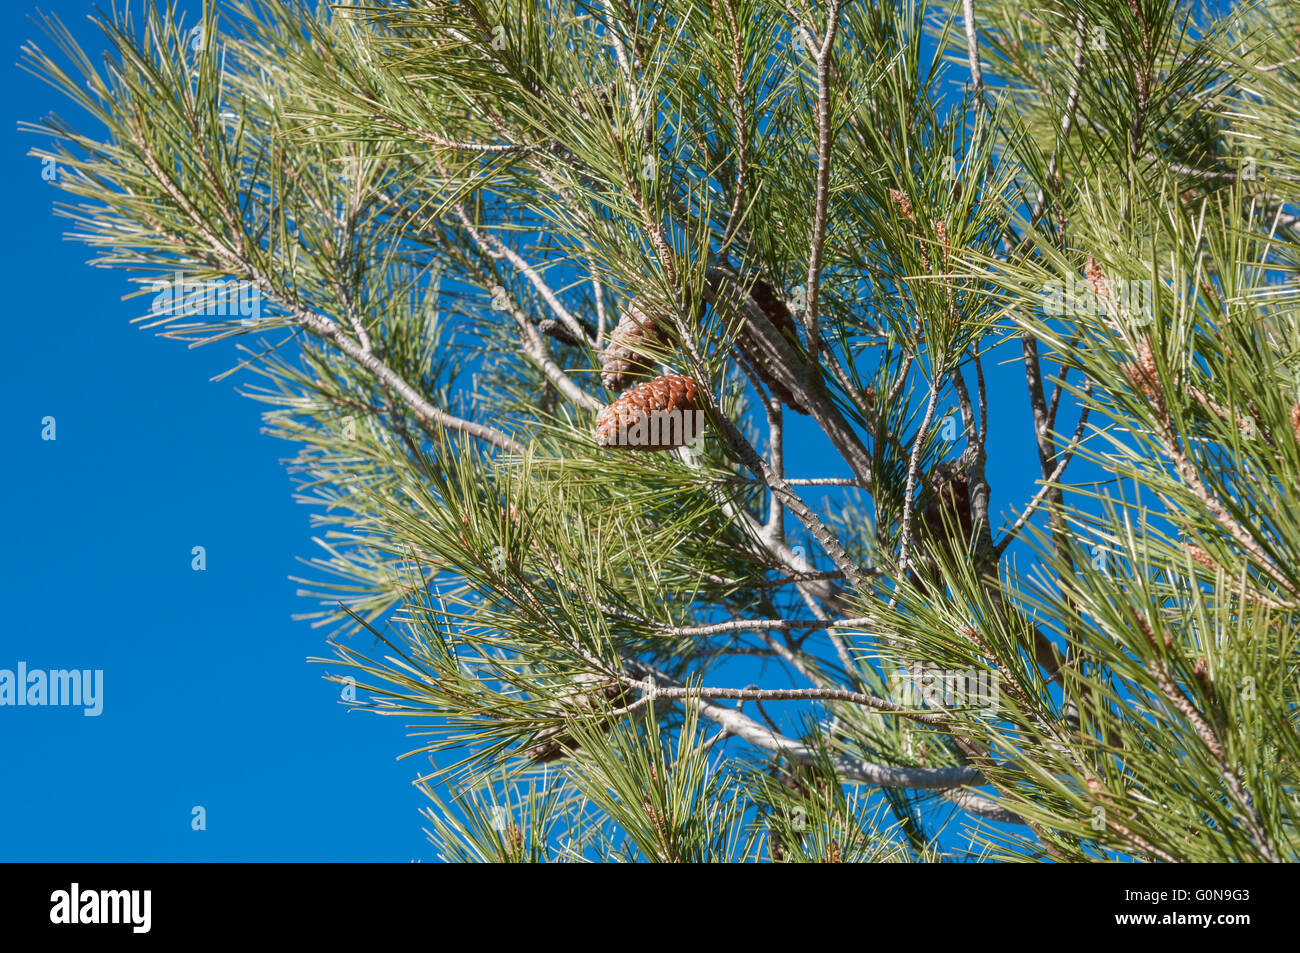 Detail of leaves, branches and cones of Aleppo Pine, Pinus halepensis - Stock Image